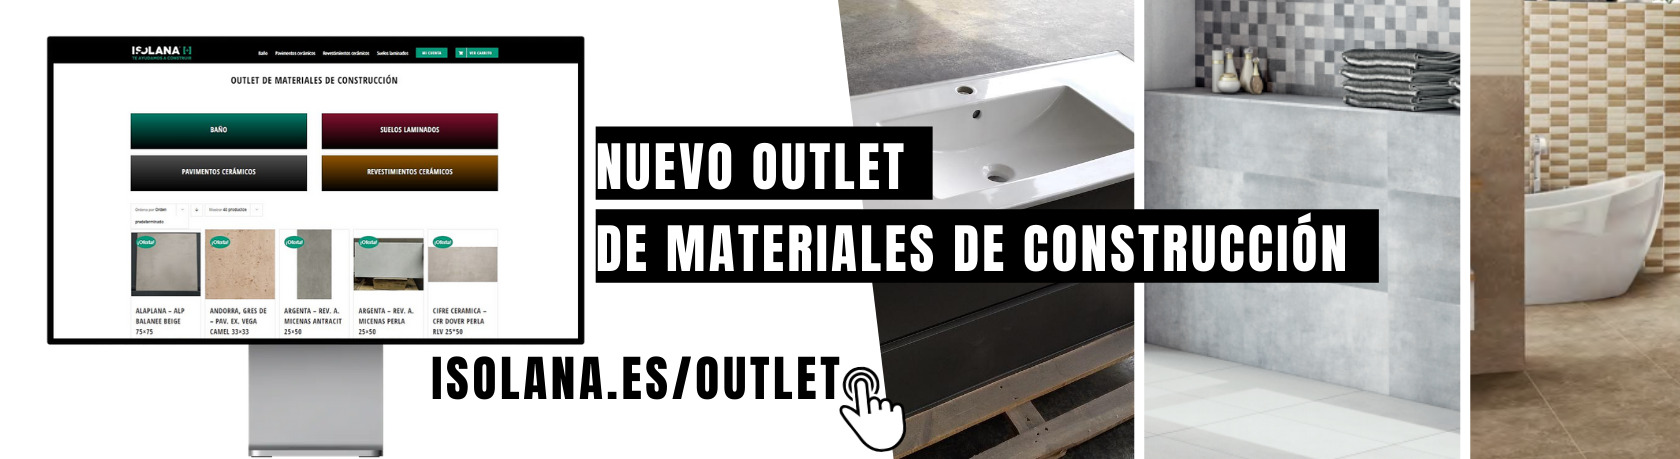 Outlet de Materiales de Construcción - ISOLANA